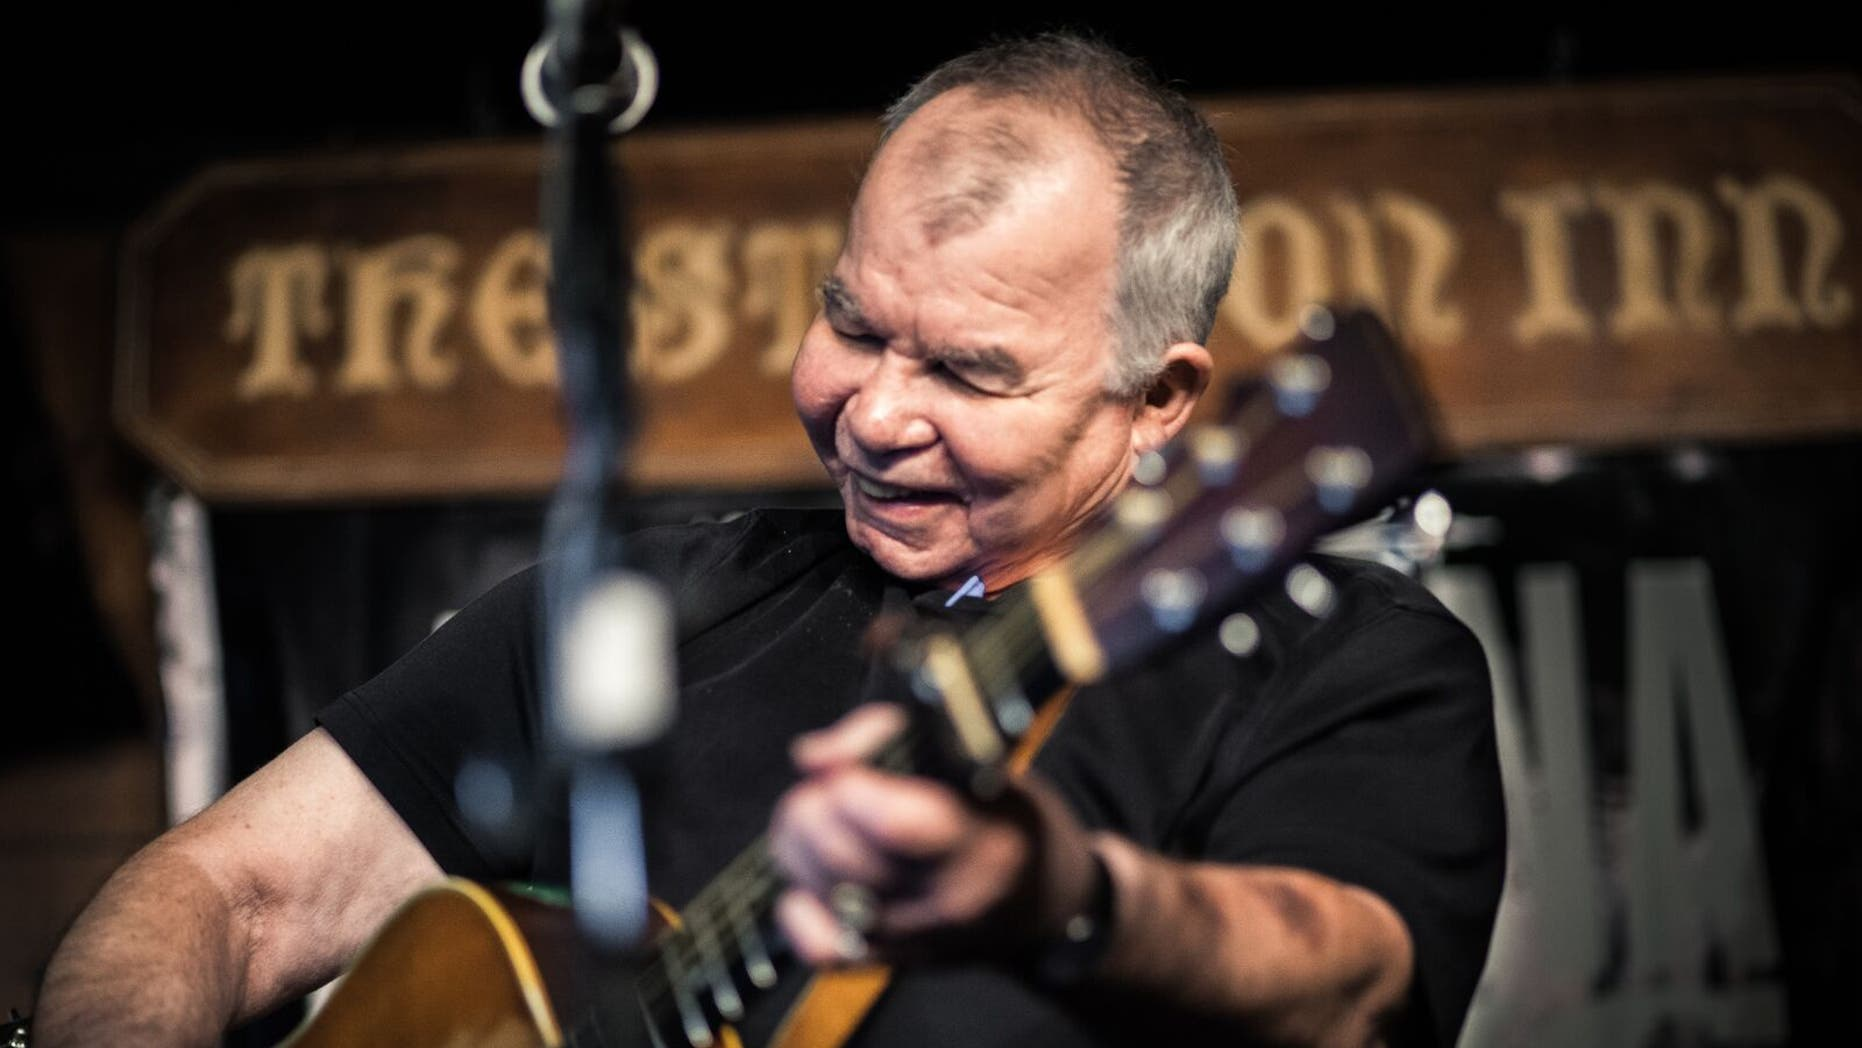 Country music star John Prine performing in Ireland.